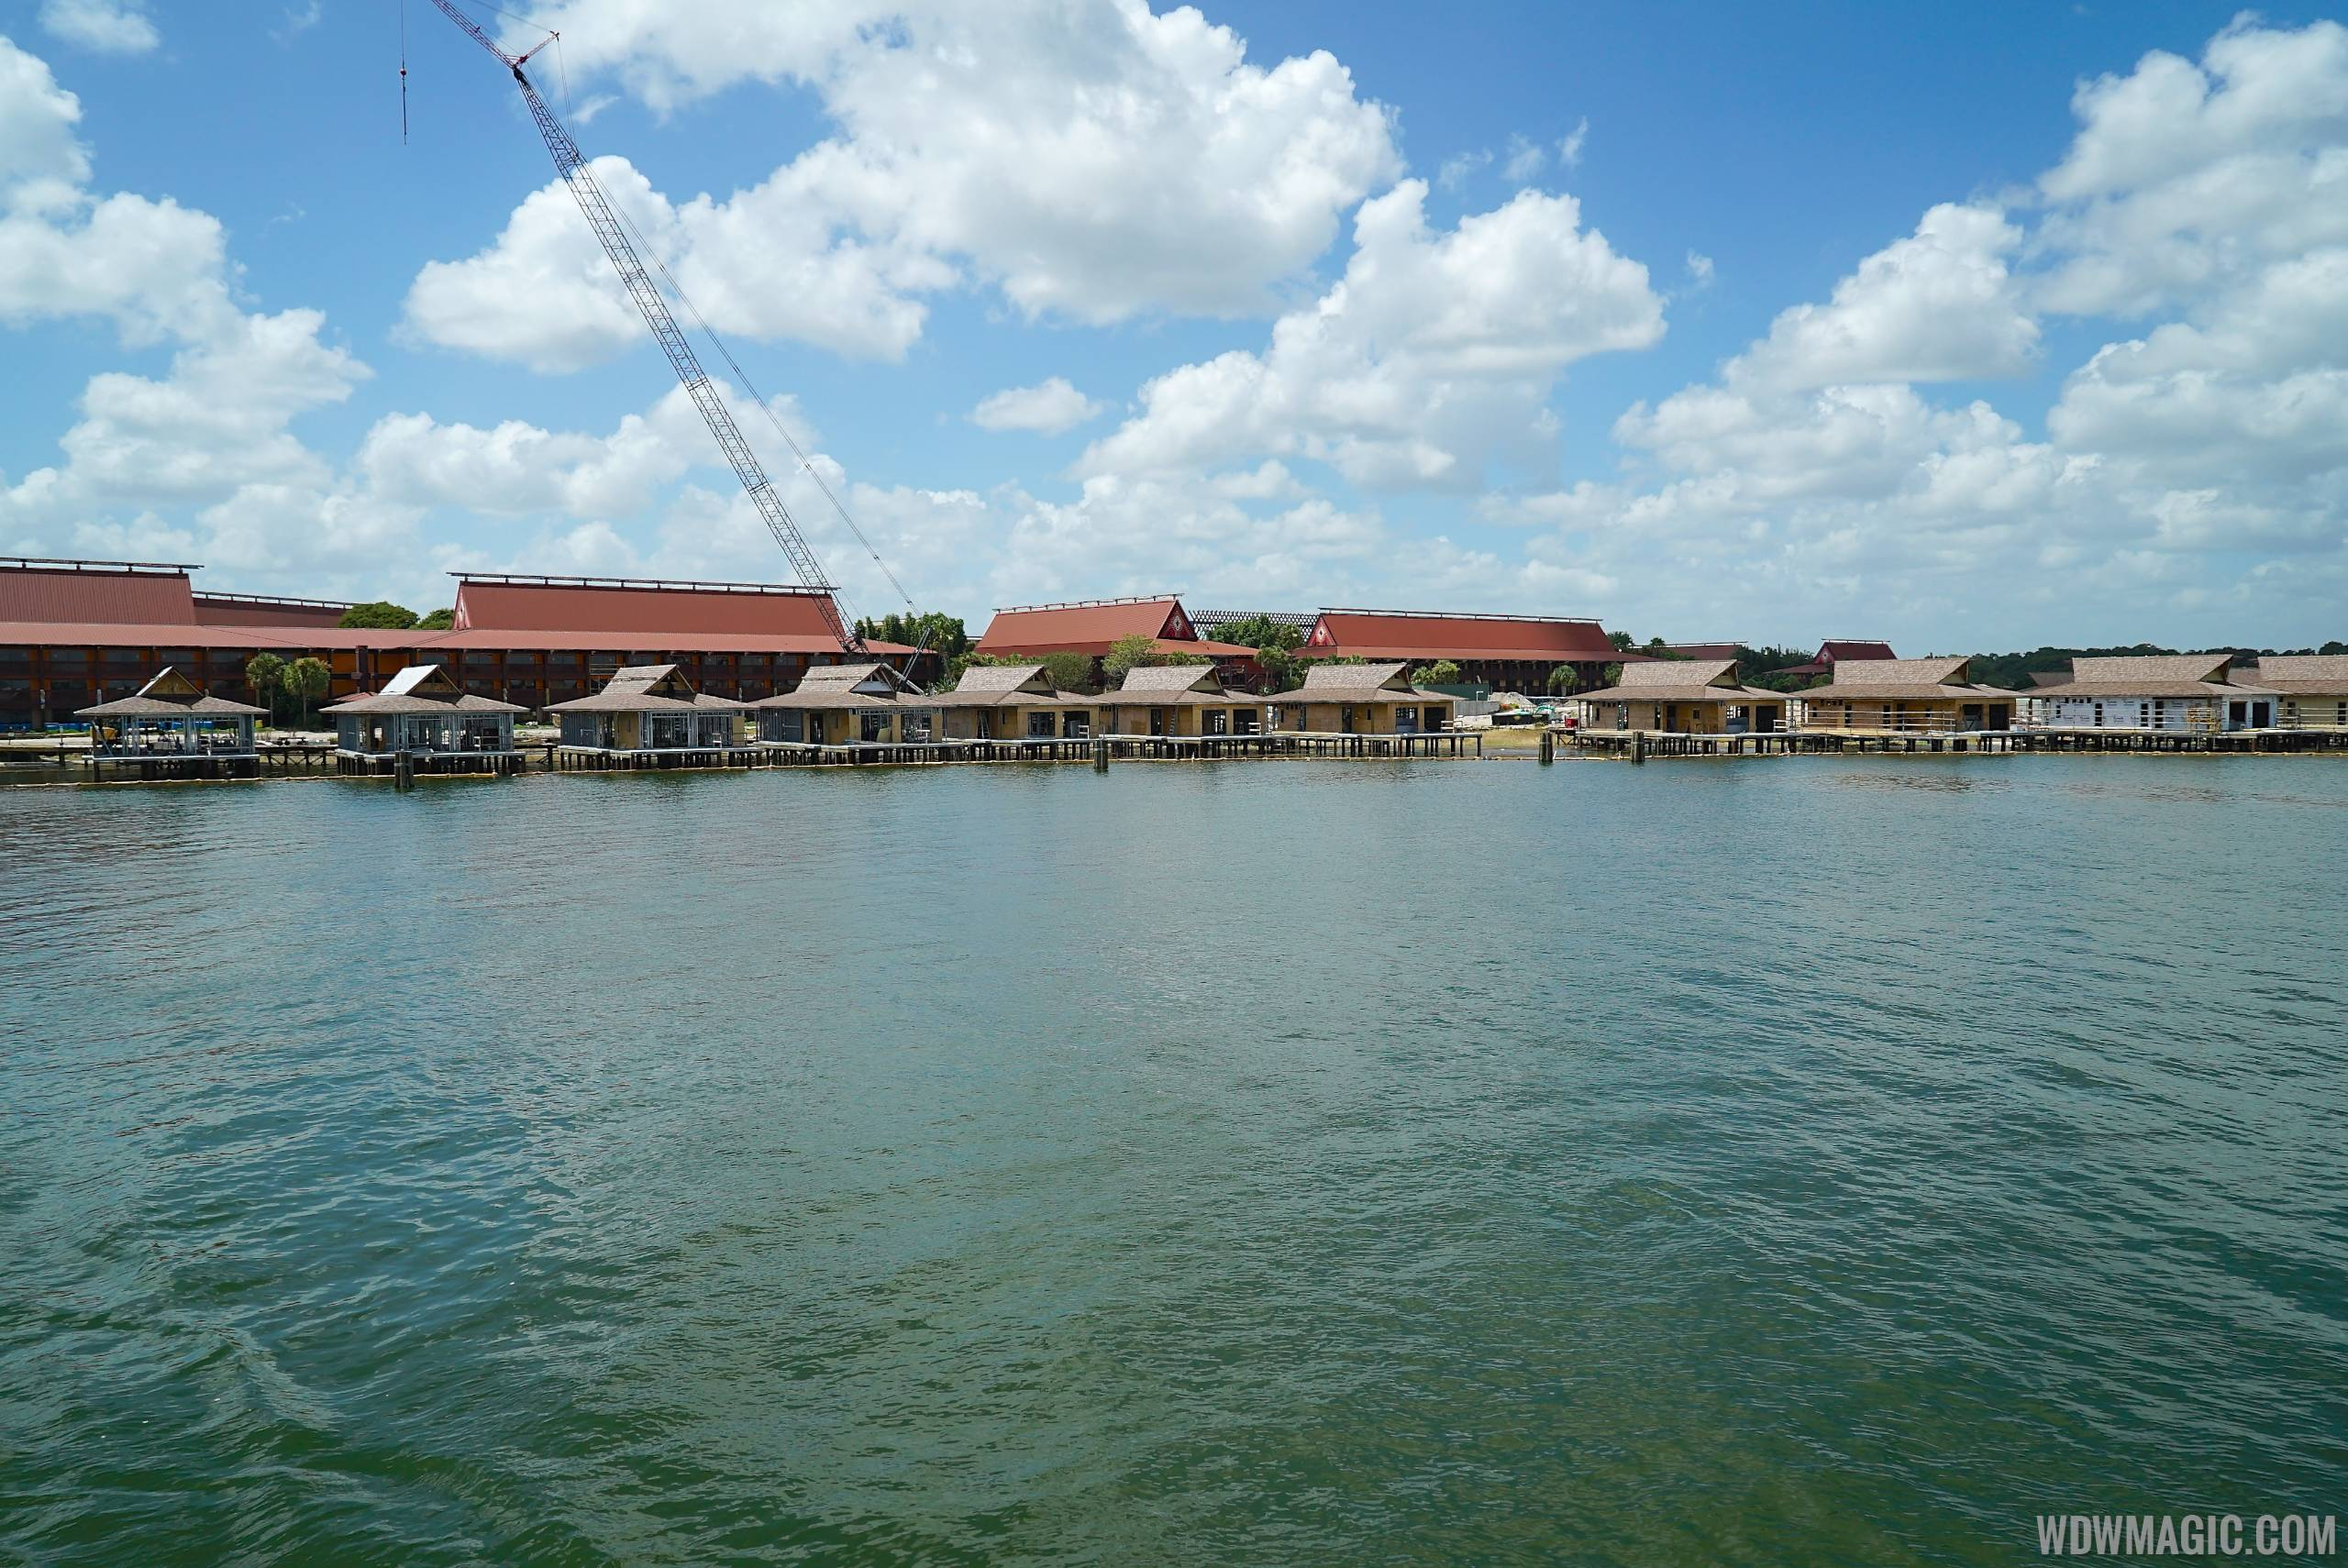 New DVC villa construction at the Polynesian